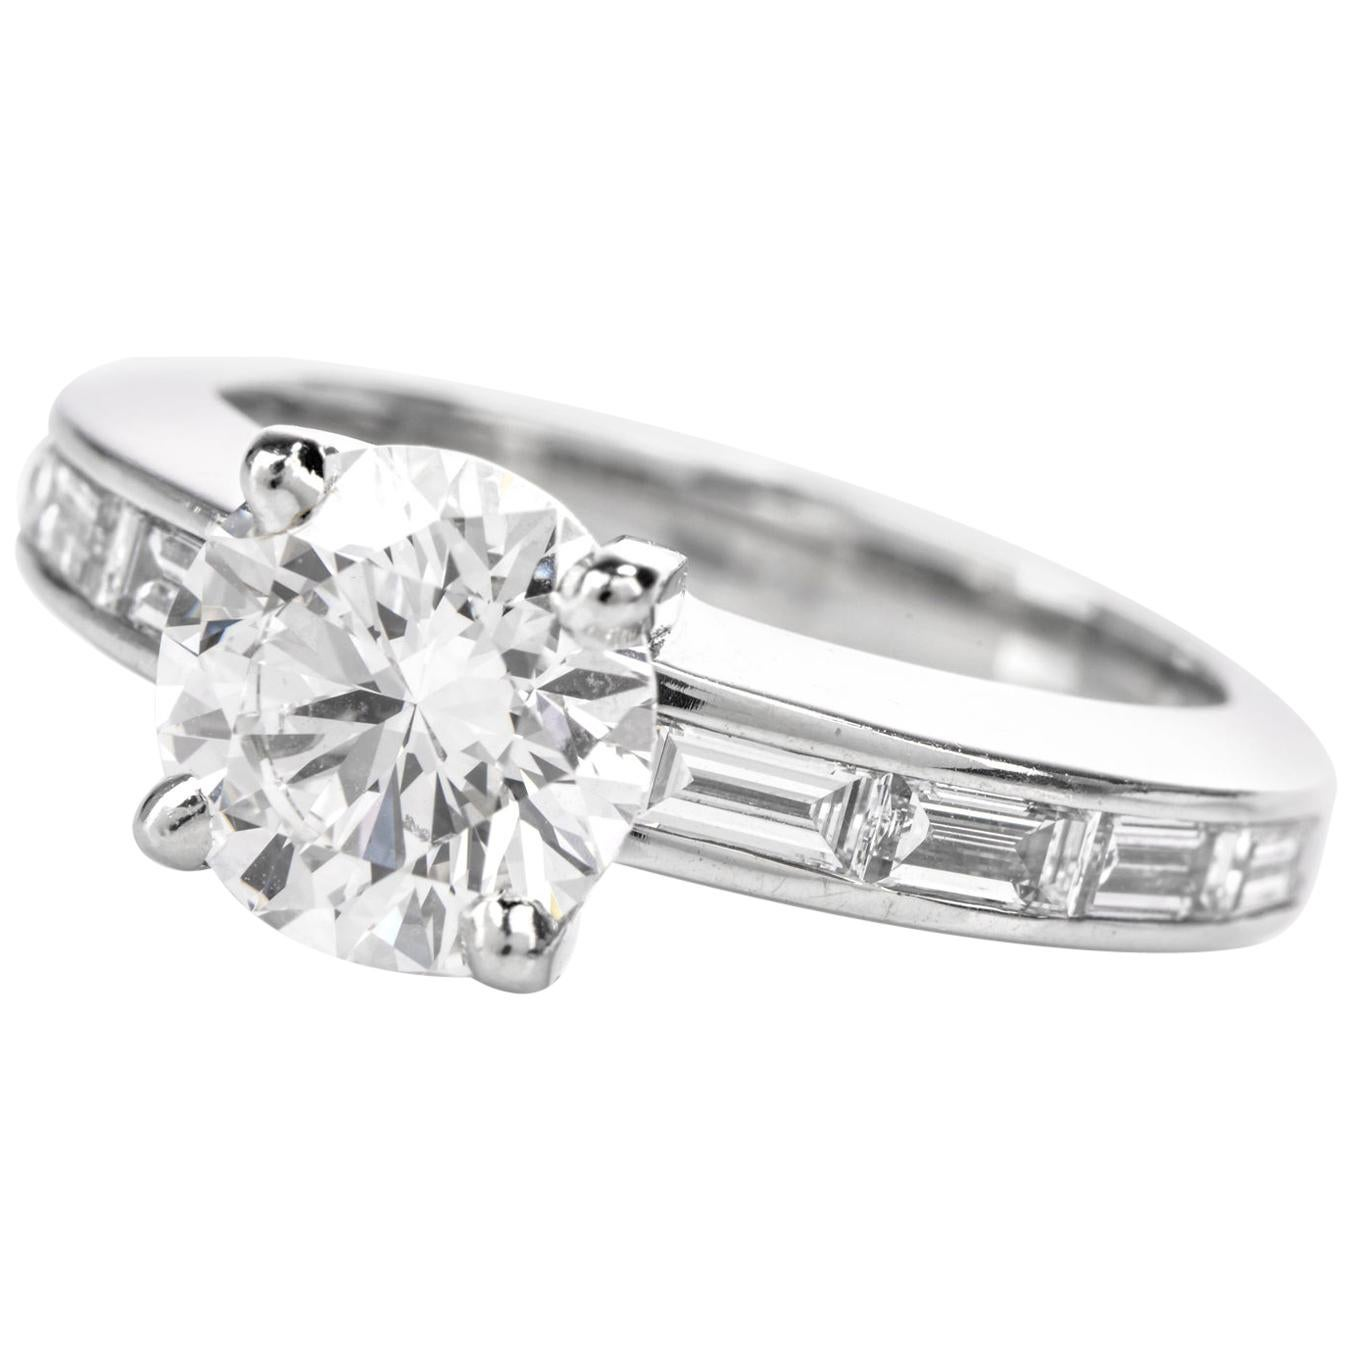 Cartier Su Solitaire GIA 1.73 Carat F-IF Diamond Engagement Ring